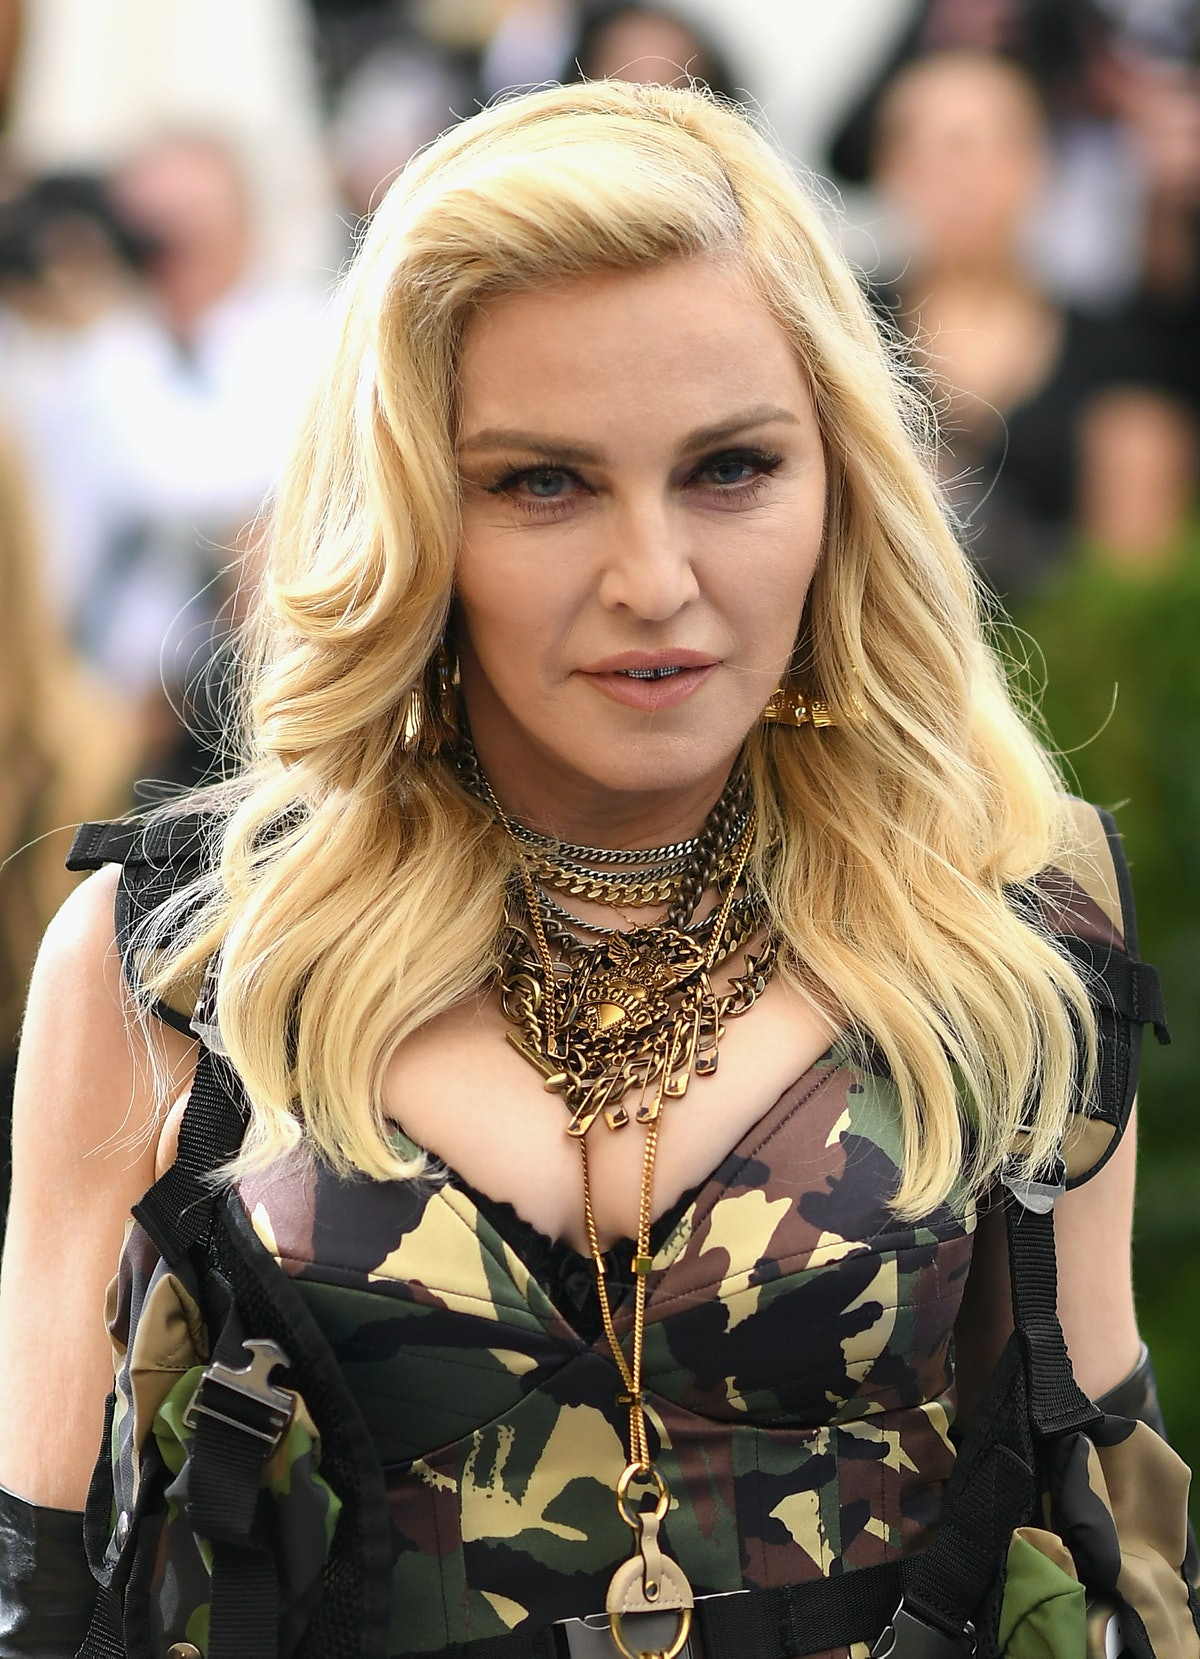 Madonna named one of the most ridiculous (bad) Leo celebrities.